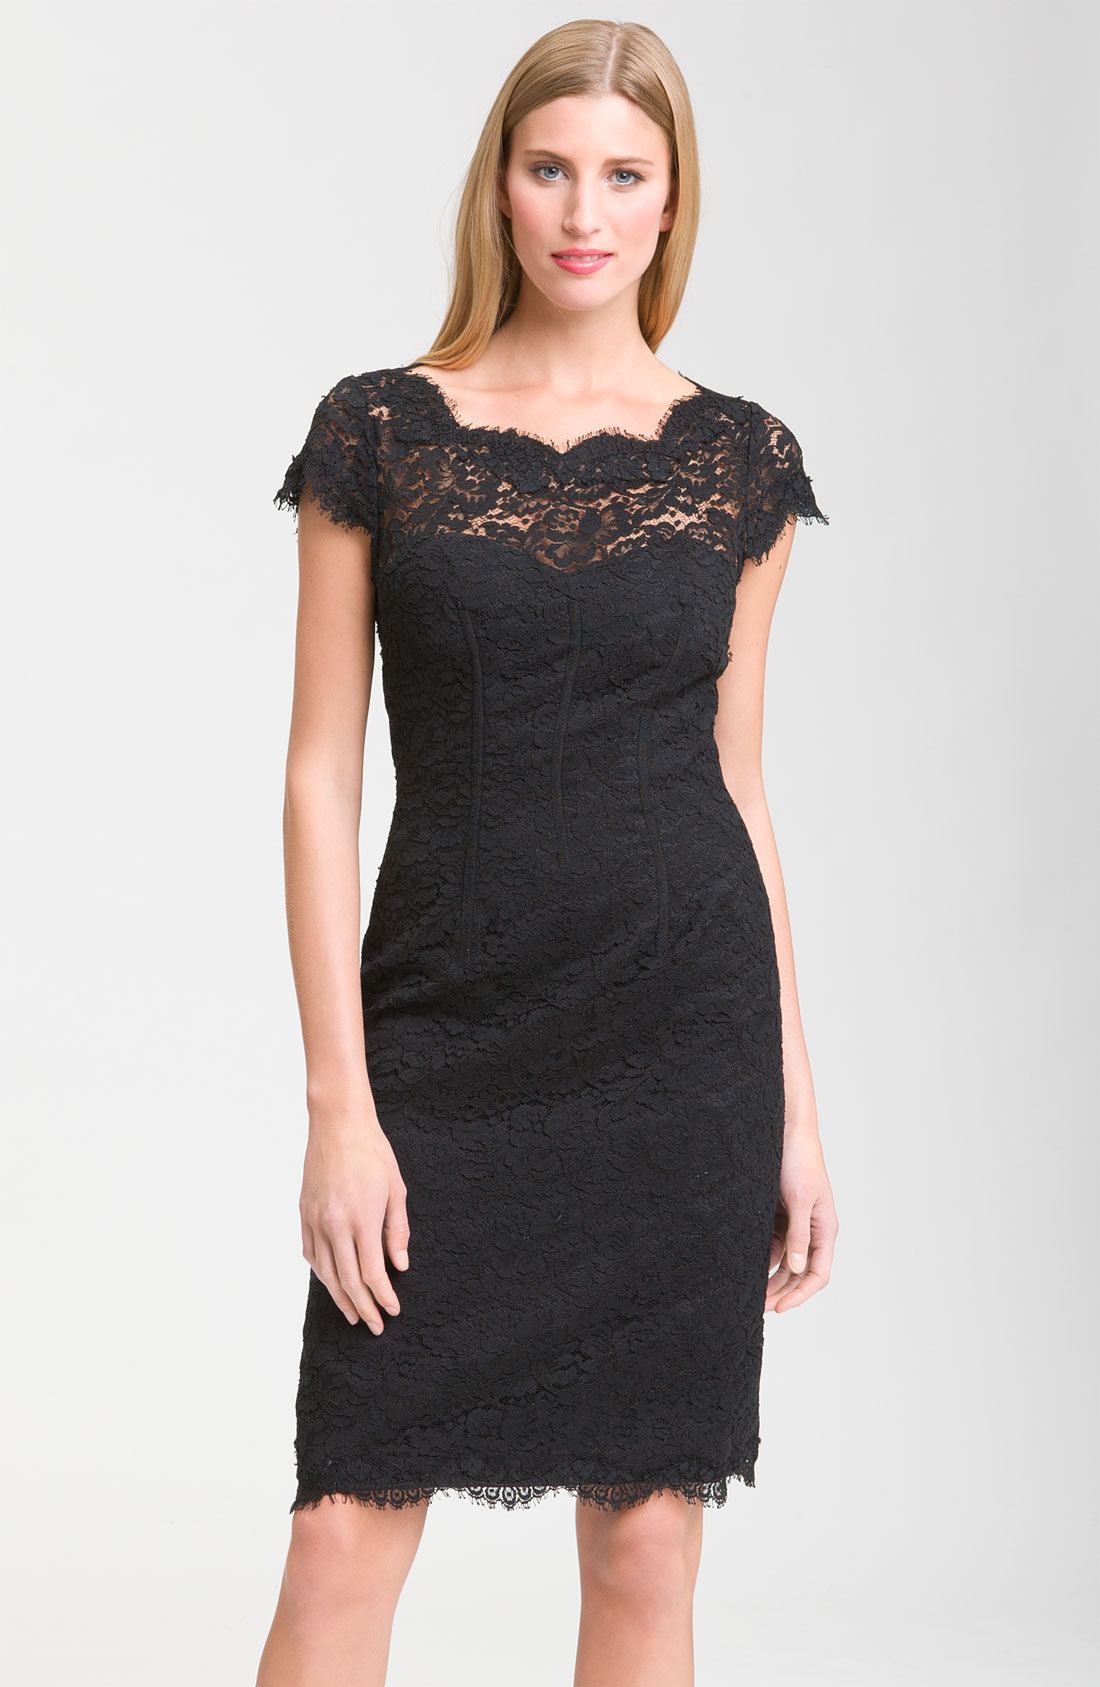 monique lhuillier bridesmaids lace from dress ForWedding Guest Lace Dresses